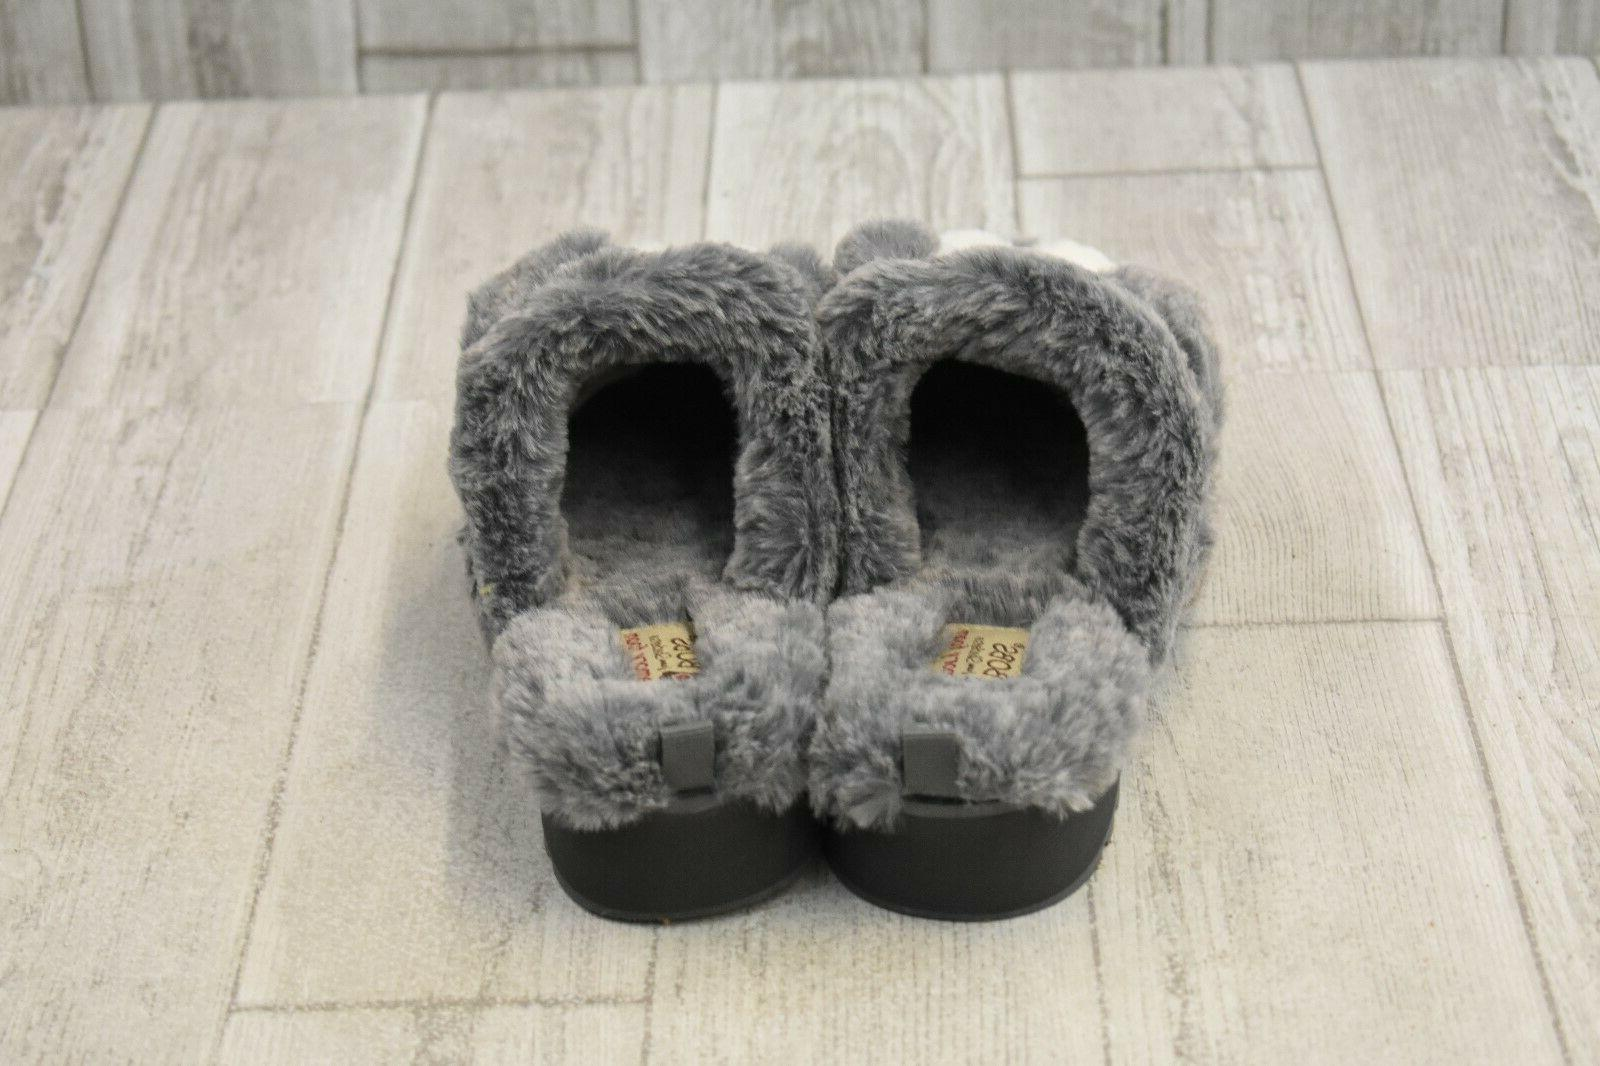 Bobs Skechers High Pawfection Slippers - Women's Size 7 - Charcoal